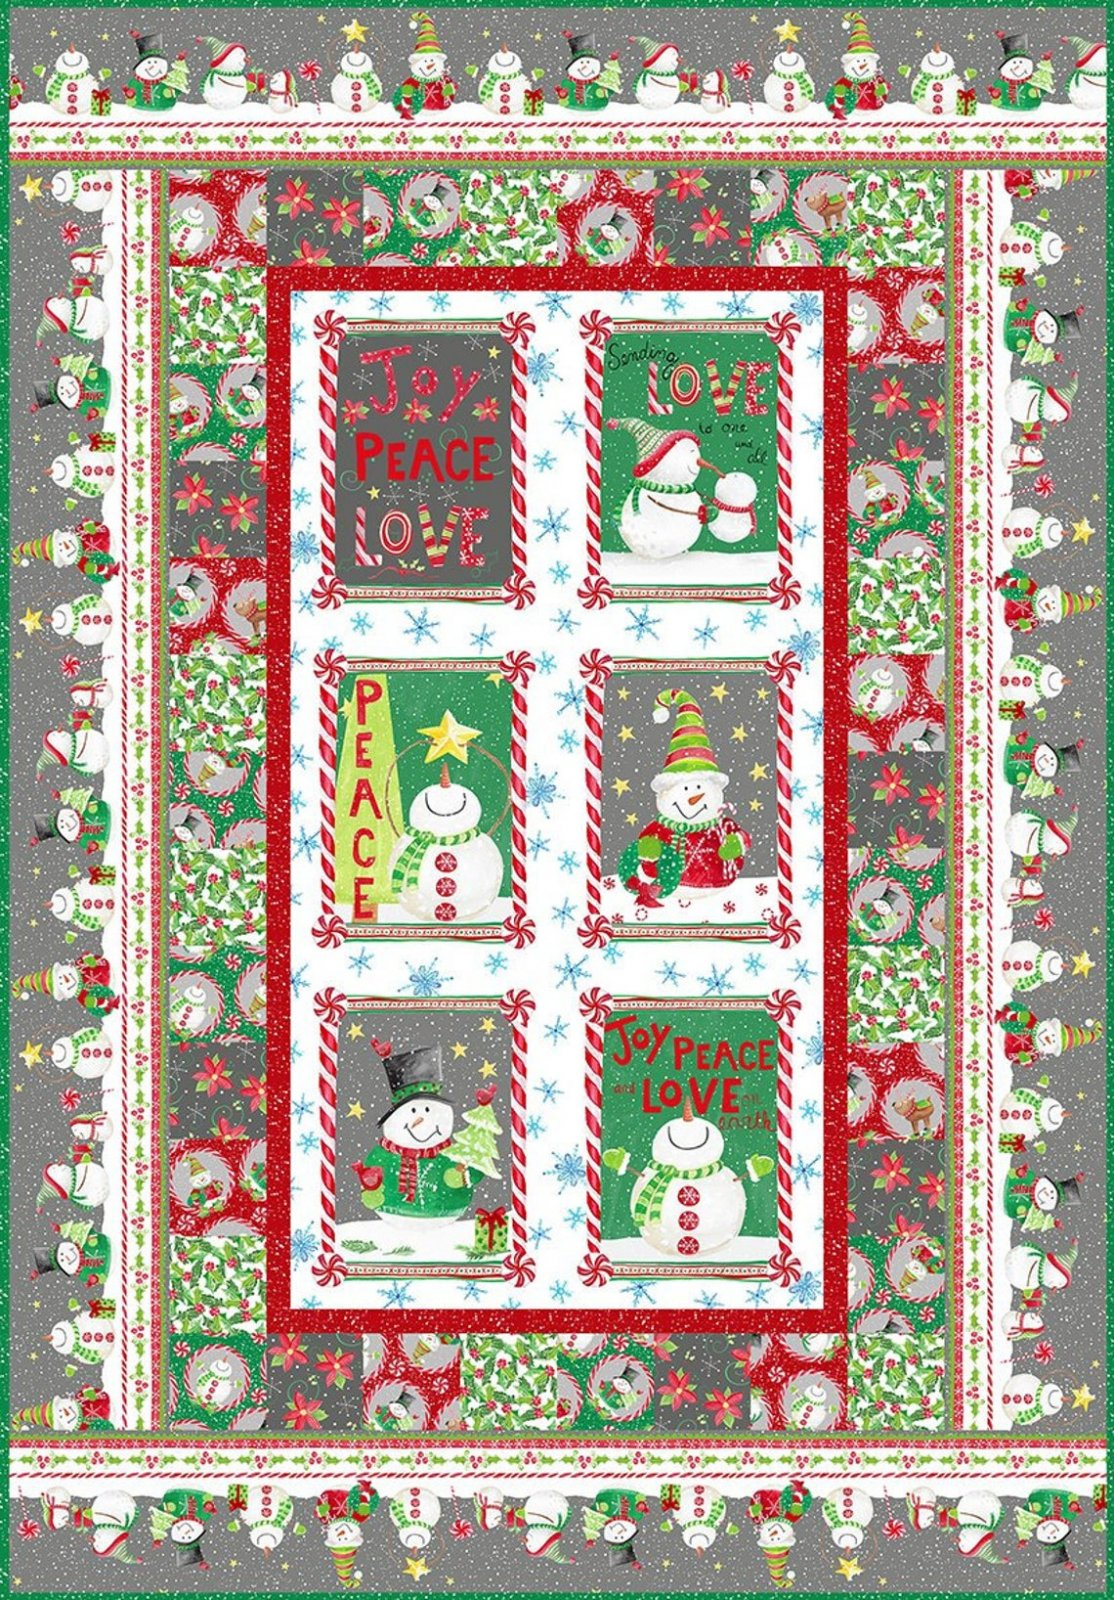 Joy, Peace and Love Quilt Kit